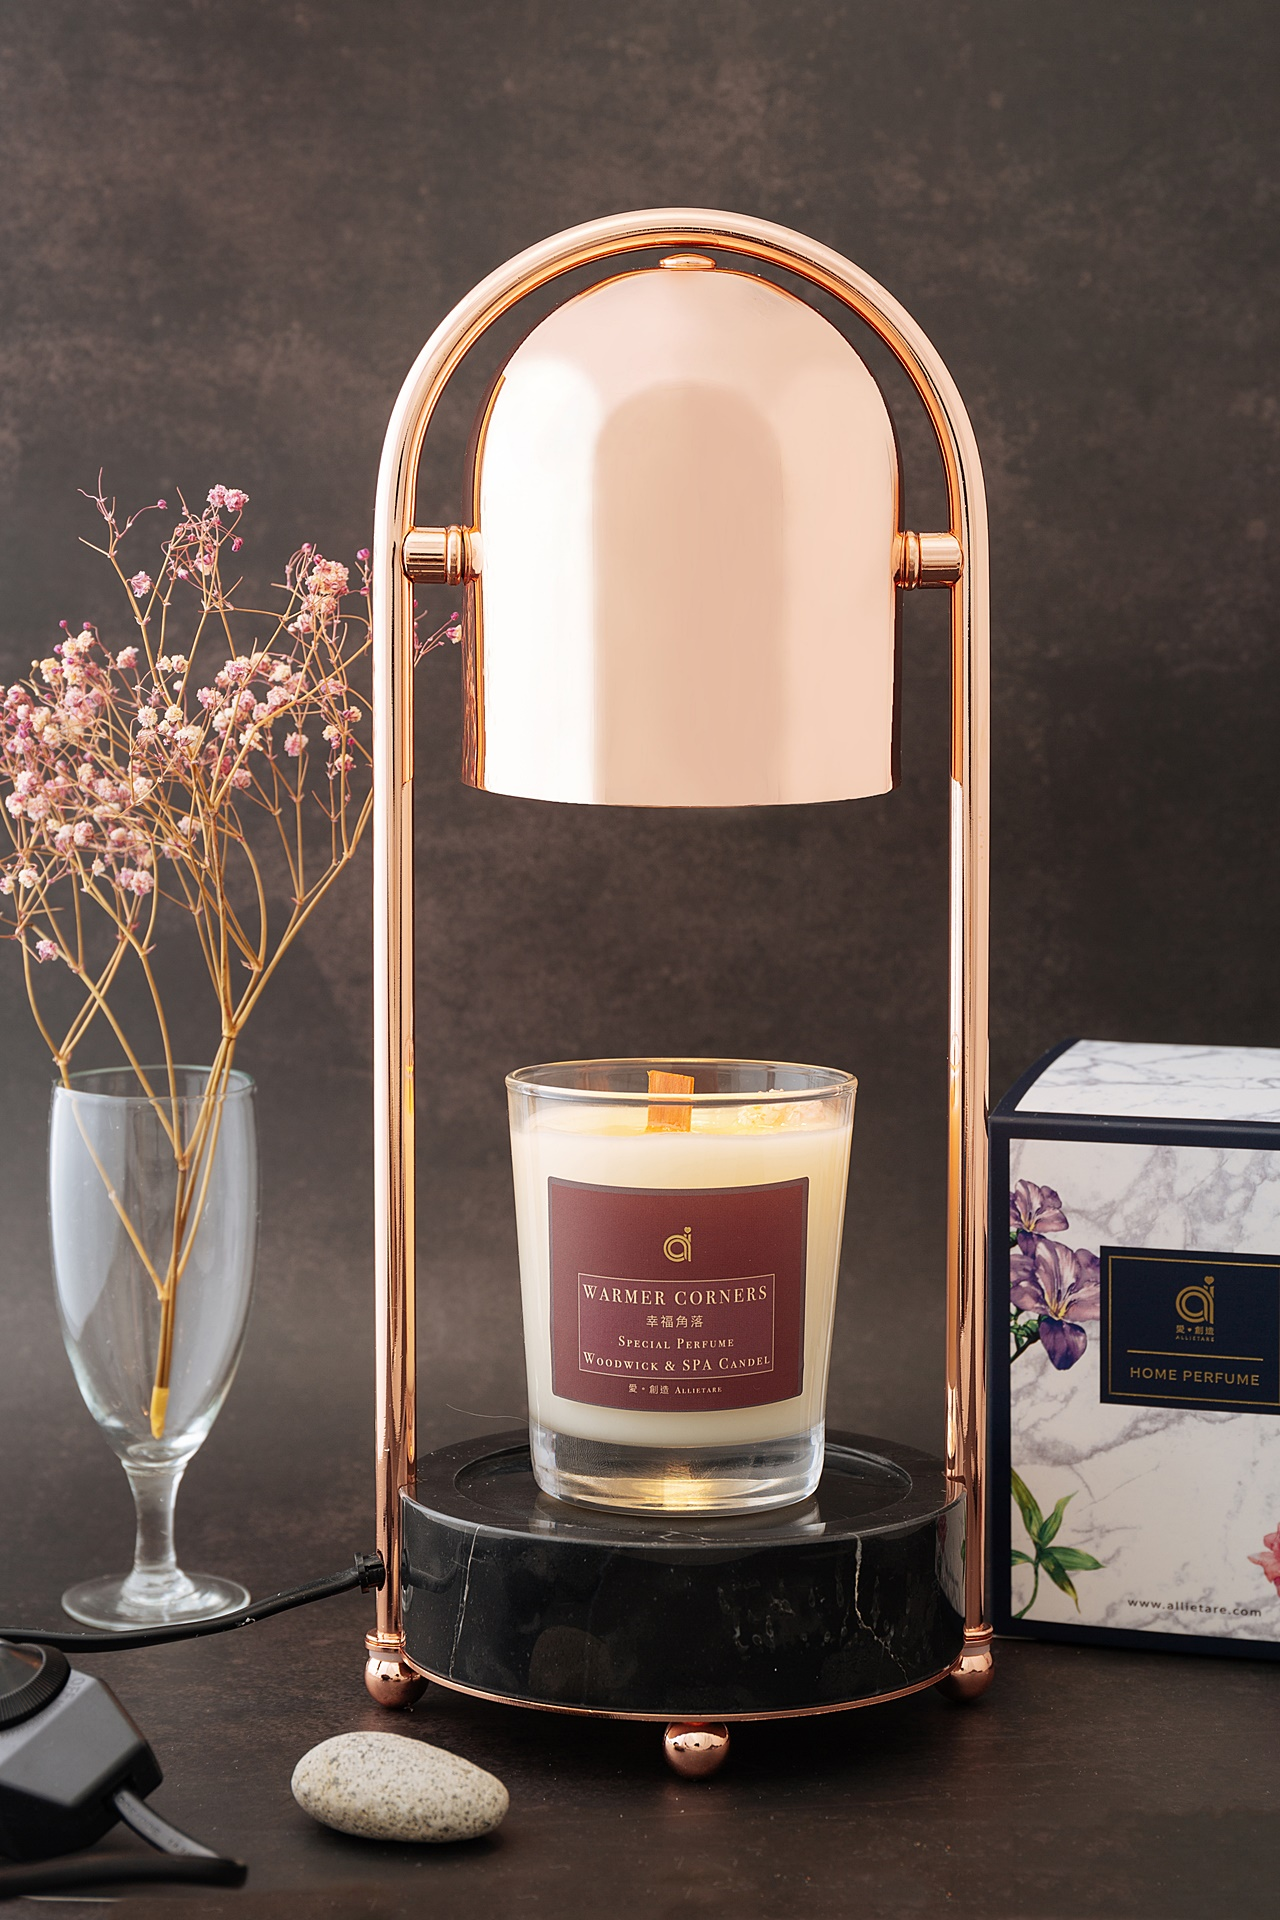 Multifunctional And Space Saving Wax Lamp Warm Lamp Candle Lamp Scented Candle Warmer Can Be Used As Reading Lamp Shop Allietare The Fragrance From Taiwan Fragrances Pinkoi